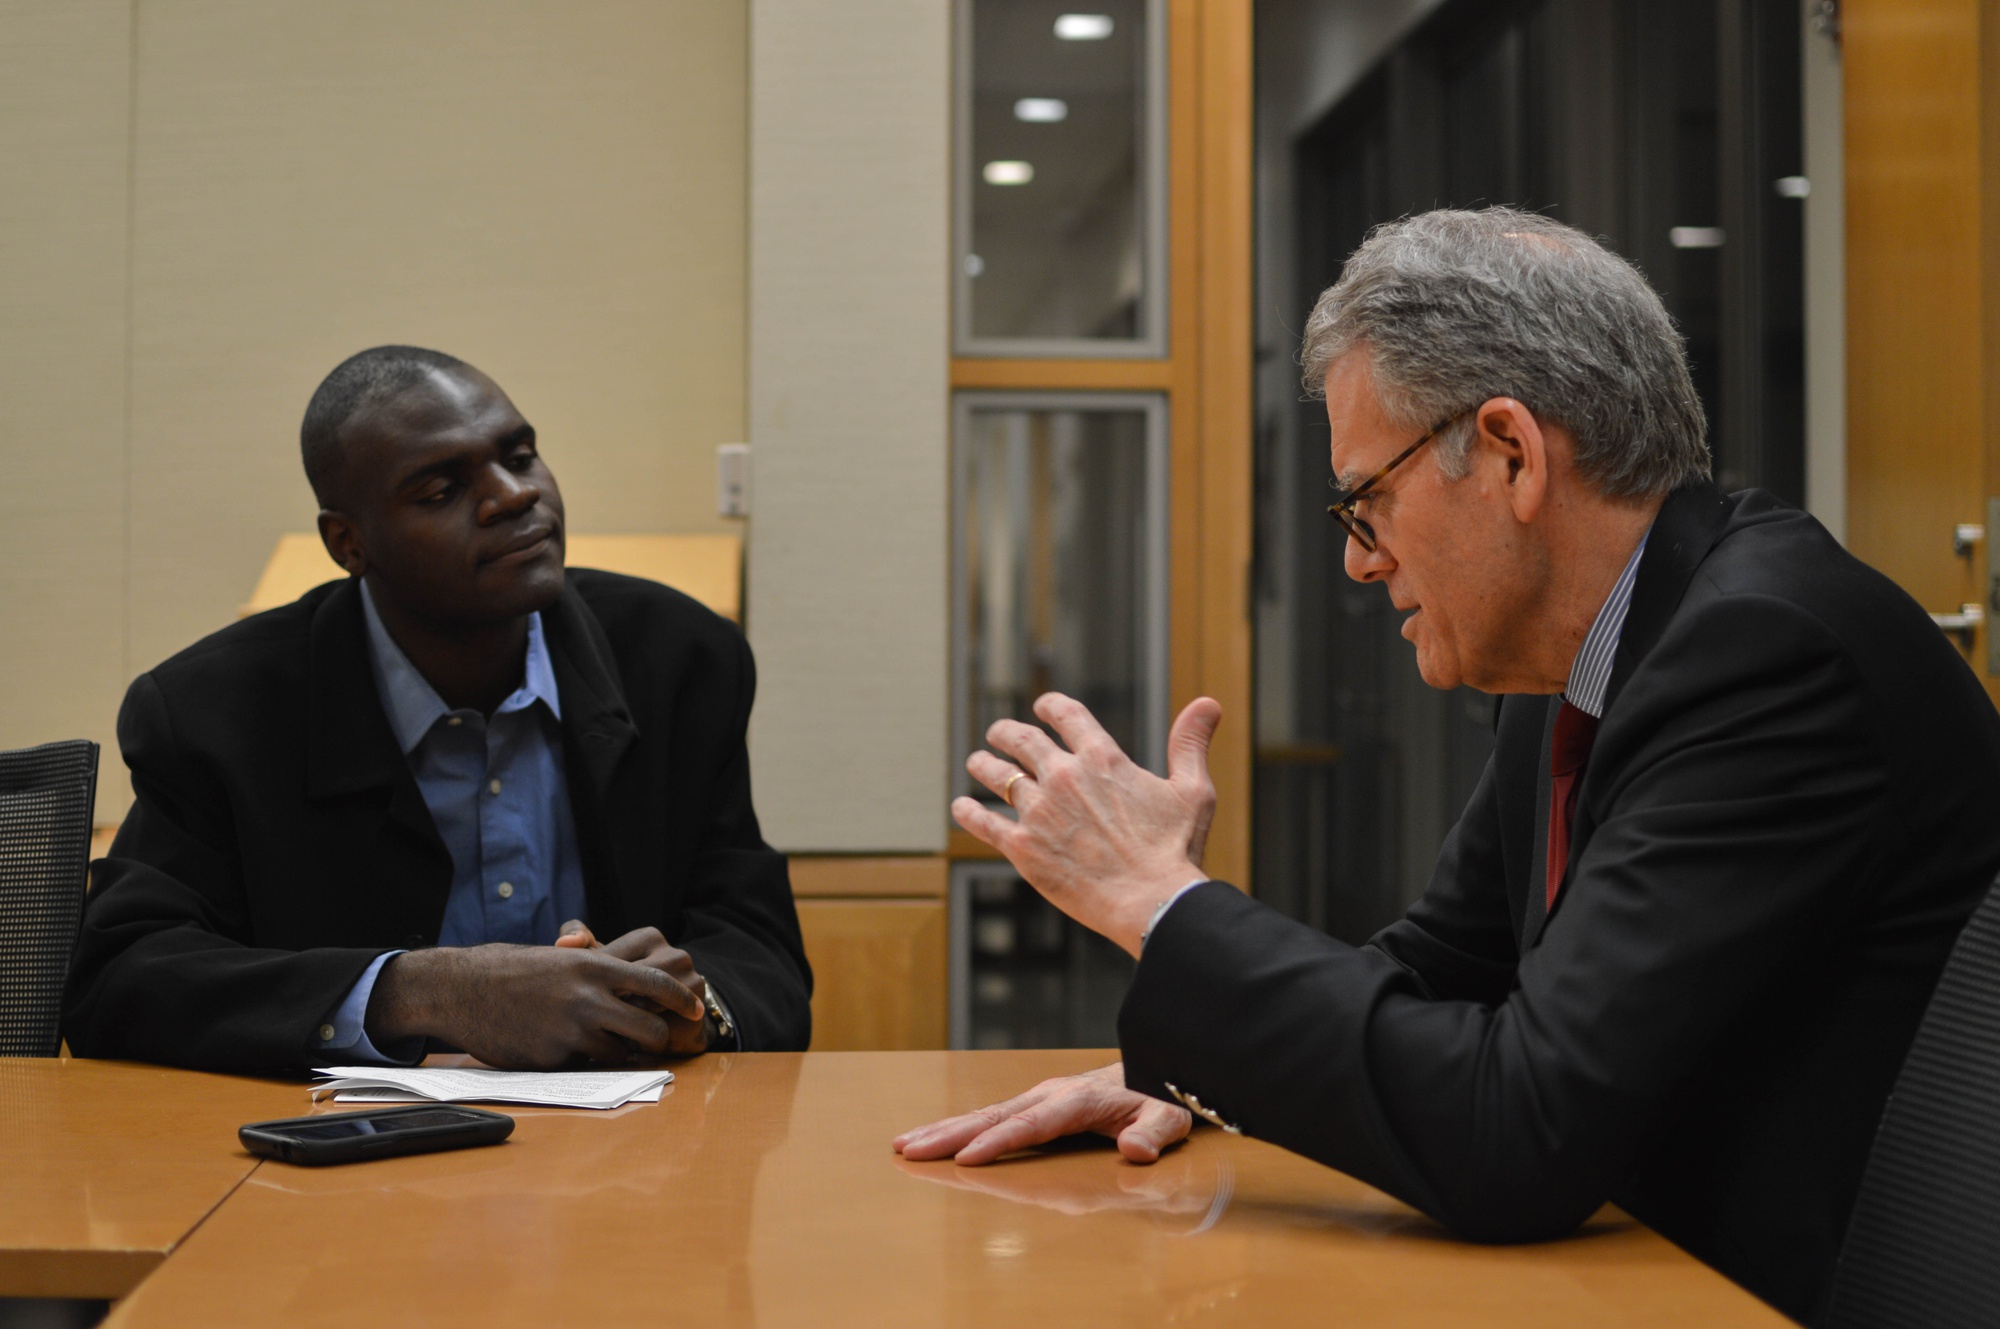 Jeffrey DeLaurentis, Chief of Mission at the U.S. Interests Section in Havana, Cuba, answers questions from Dennis O. Ojogho '16 in a January 30th interview.